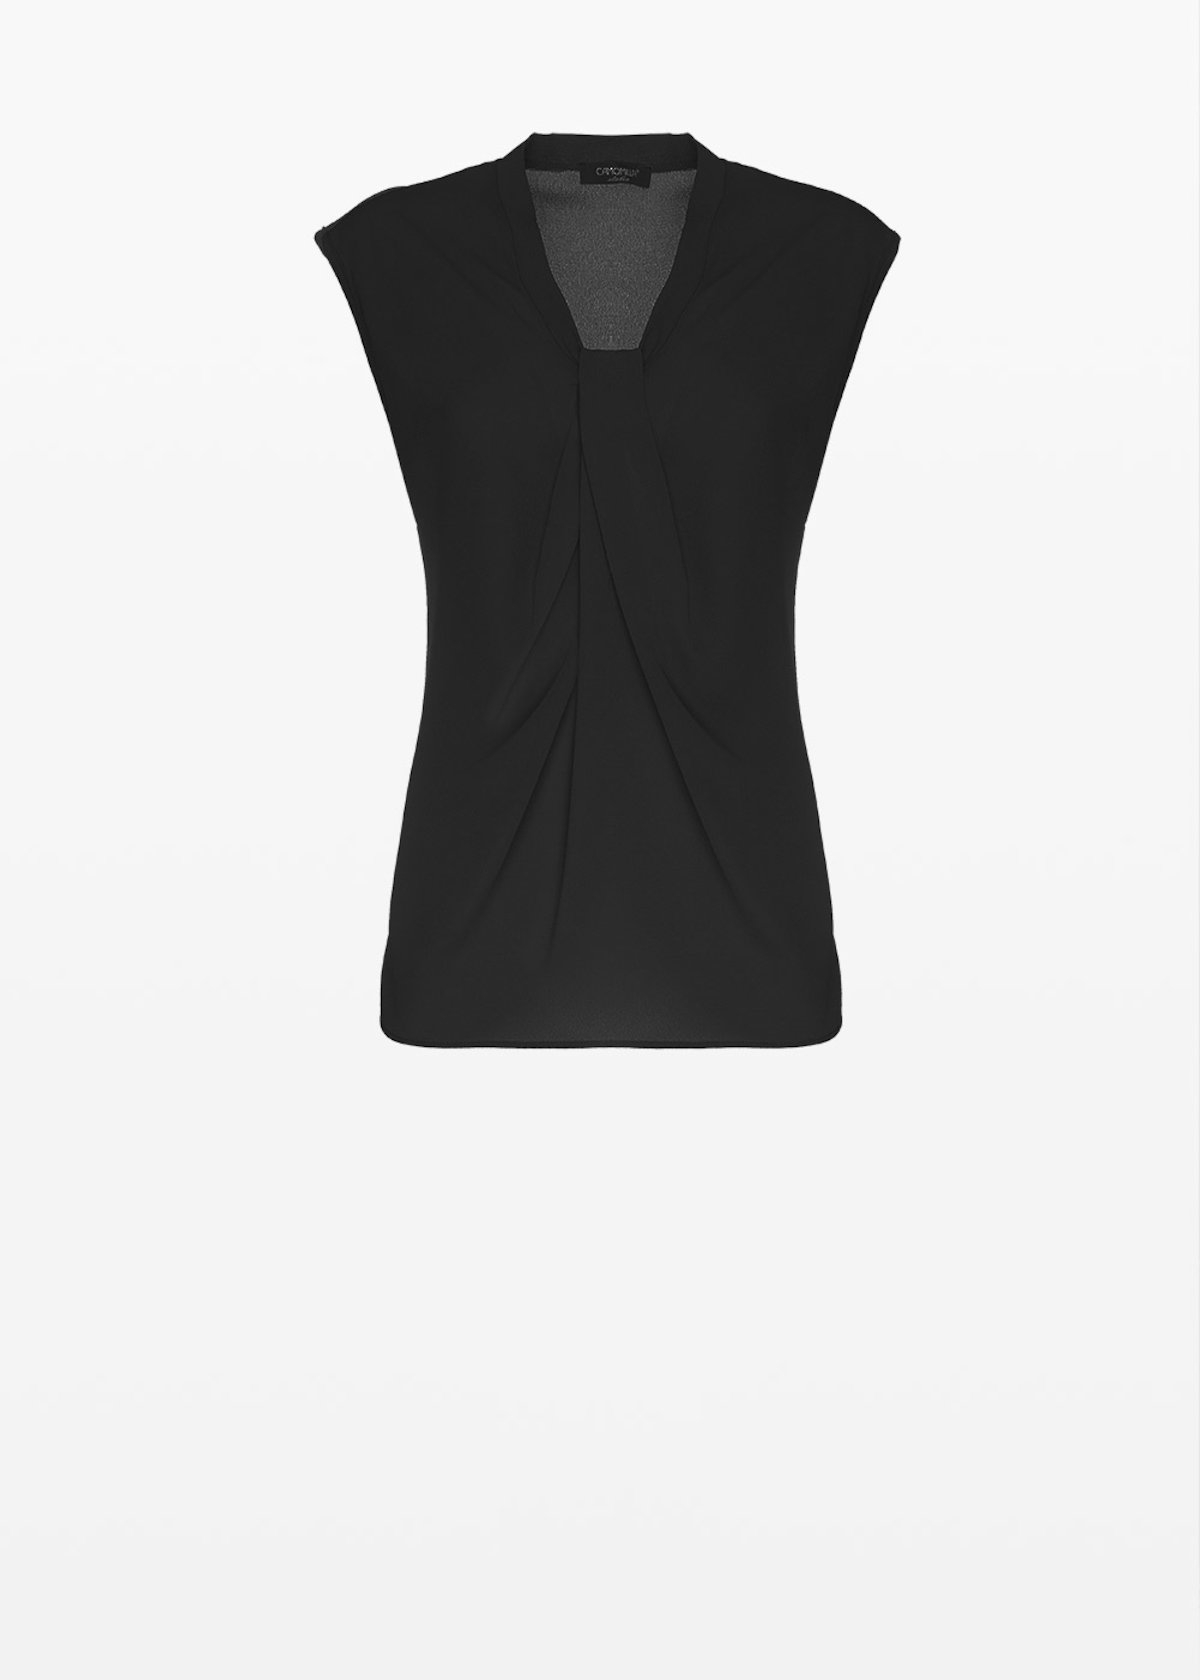 Sleeveless Tom top with knot neckline - Black - Woman - Category image